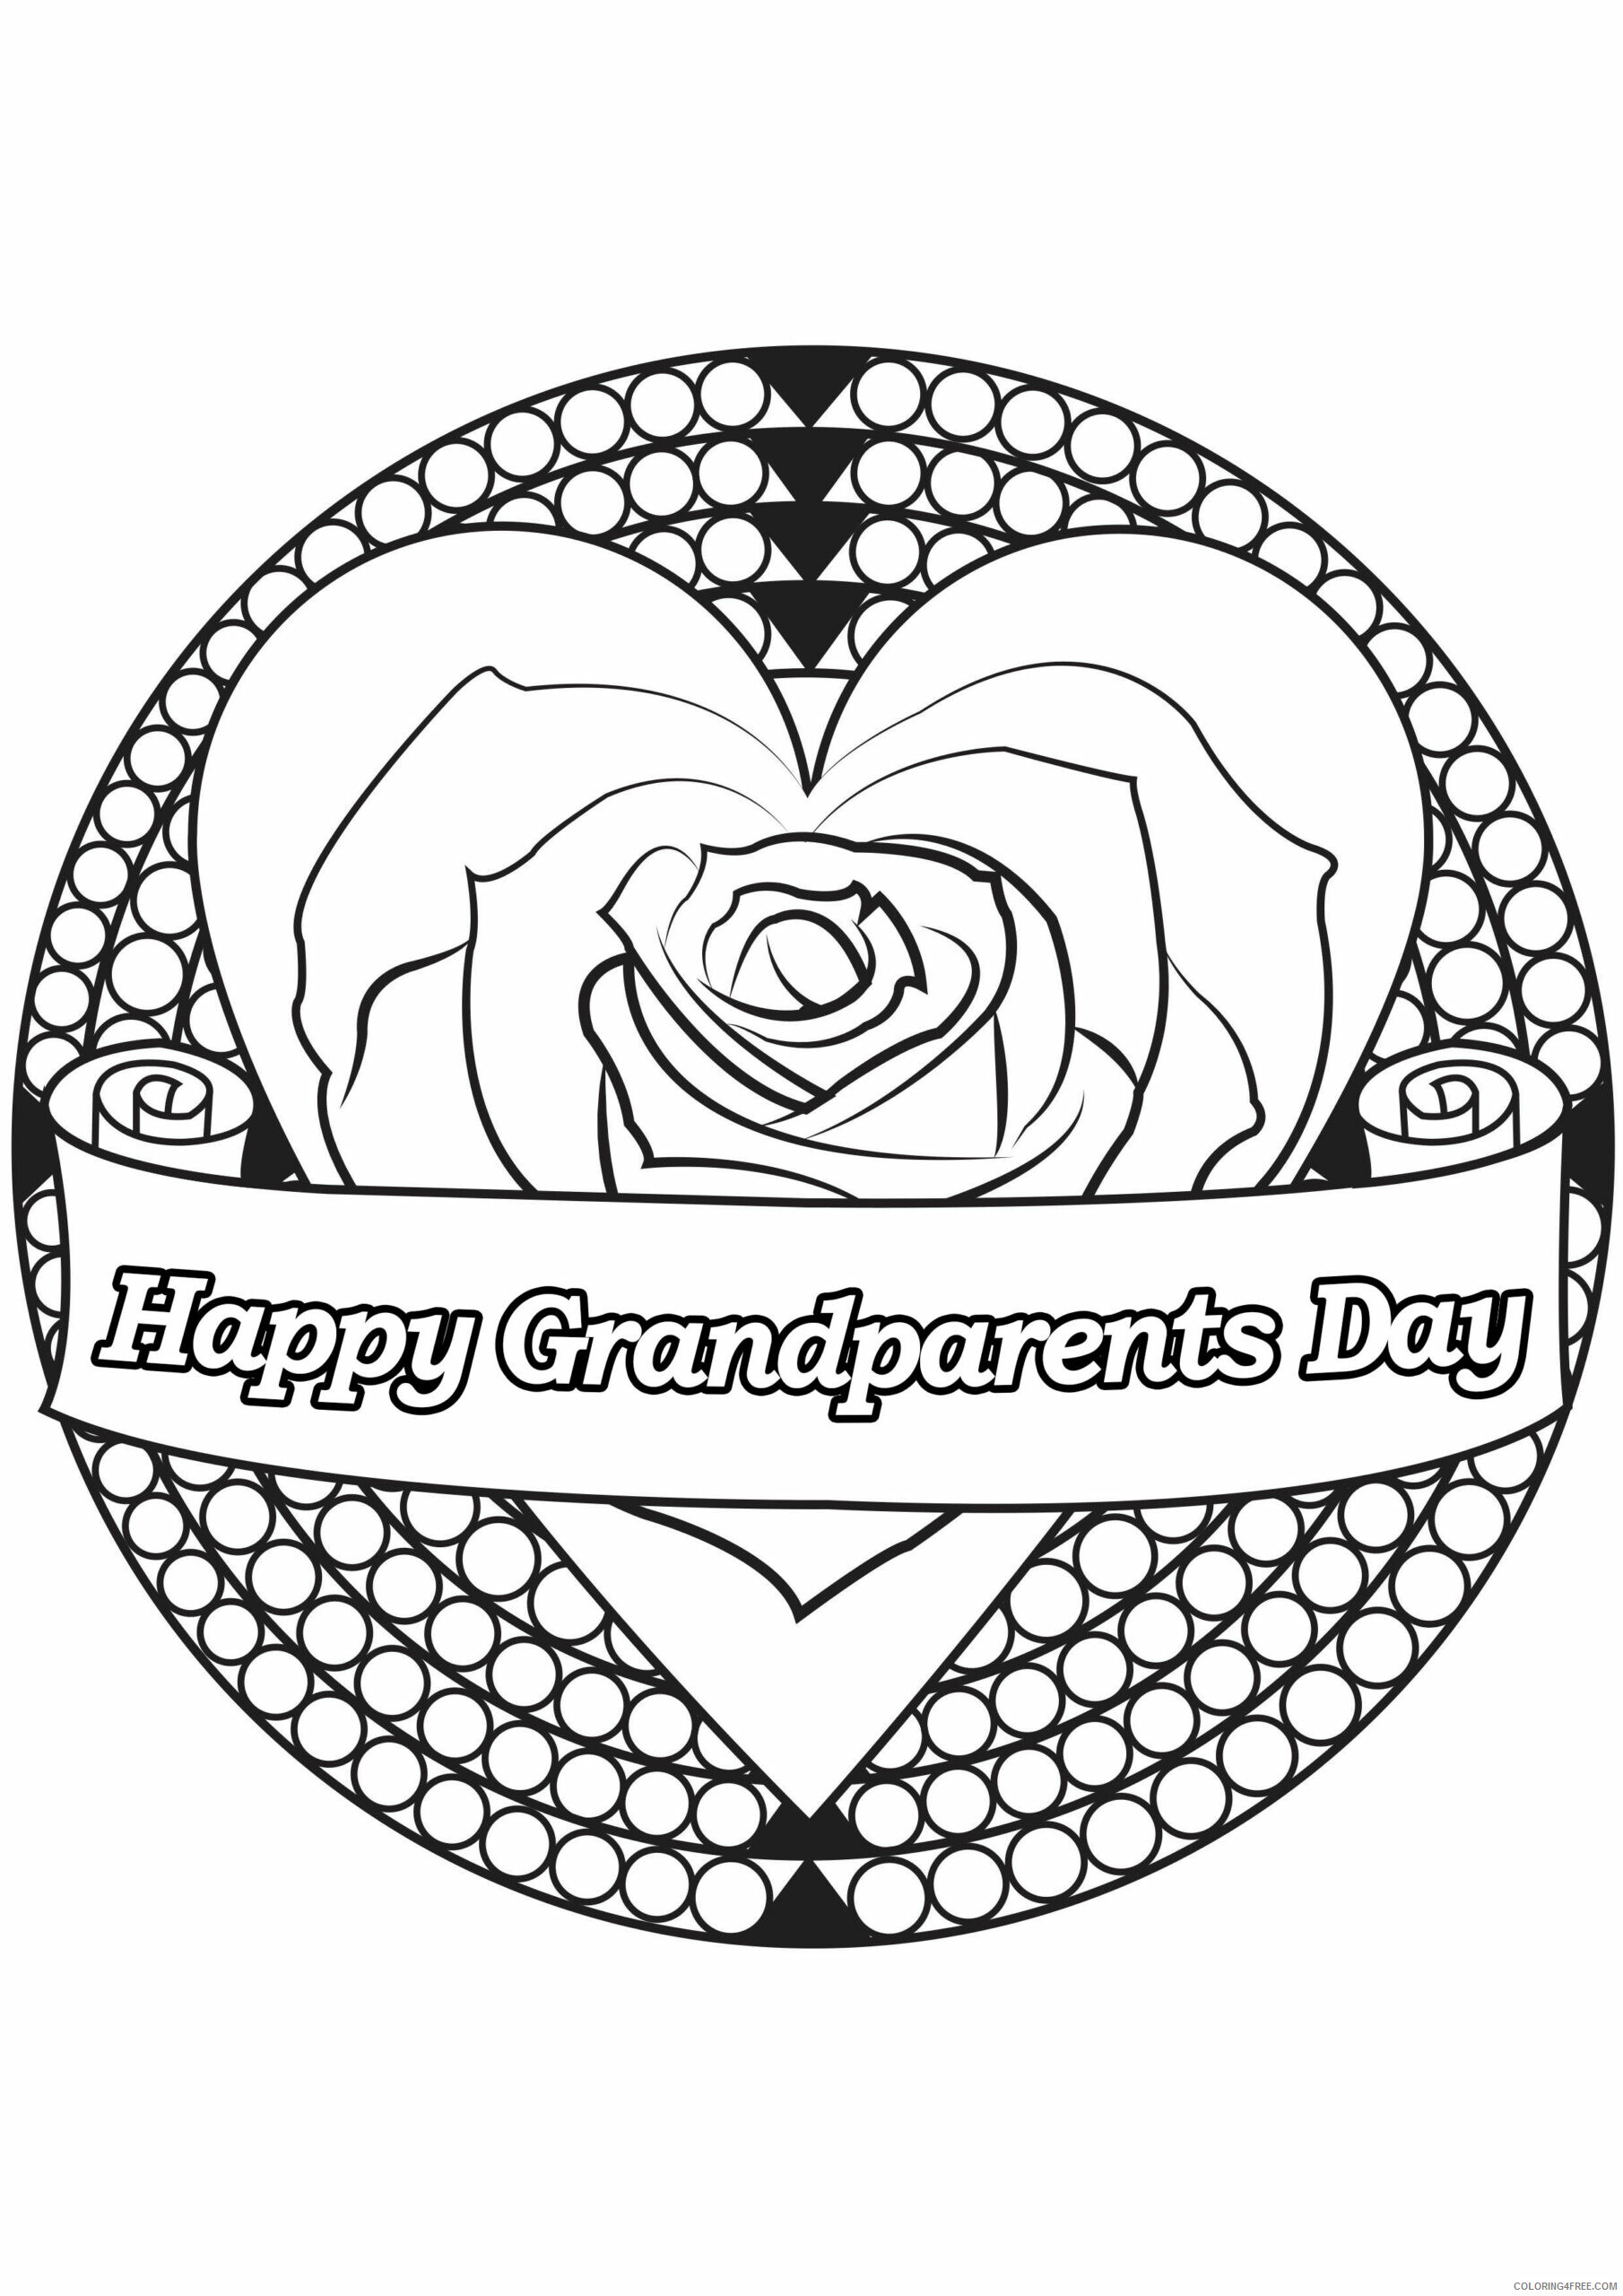 Grandparents Coloring Pages Grandparents Day Printable 2021 3024 Coloring4free